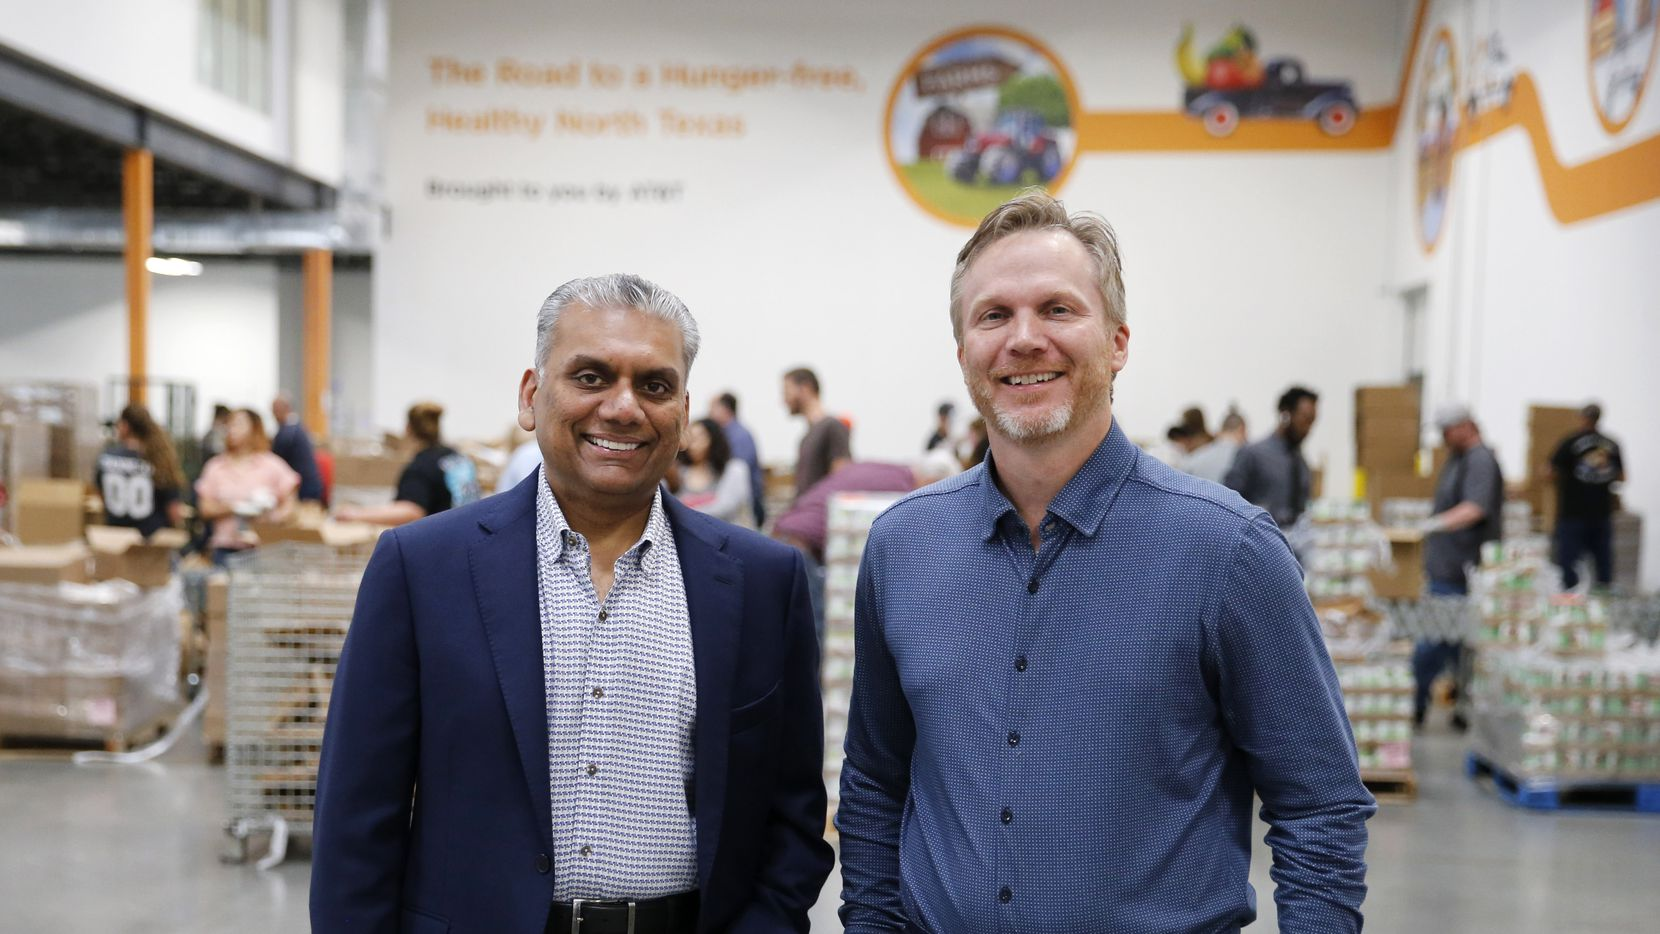 Anurag Jain, chairman of the North Texas Food Bank, is shown with Shiftsmart president Patrick Brandt at North Texas Food Bank in Plano.